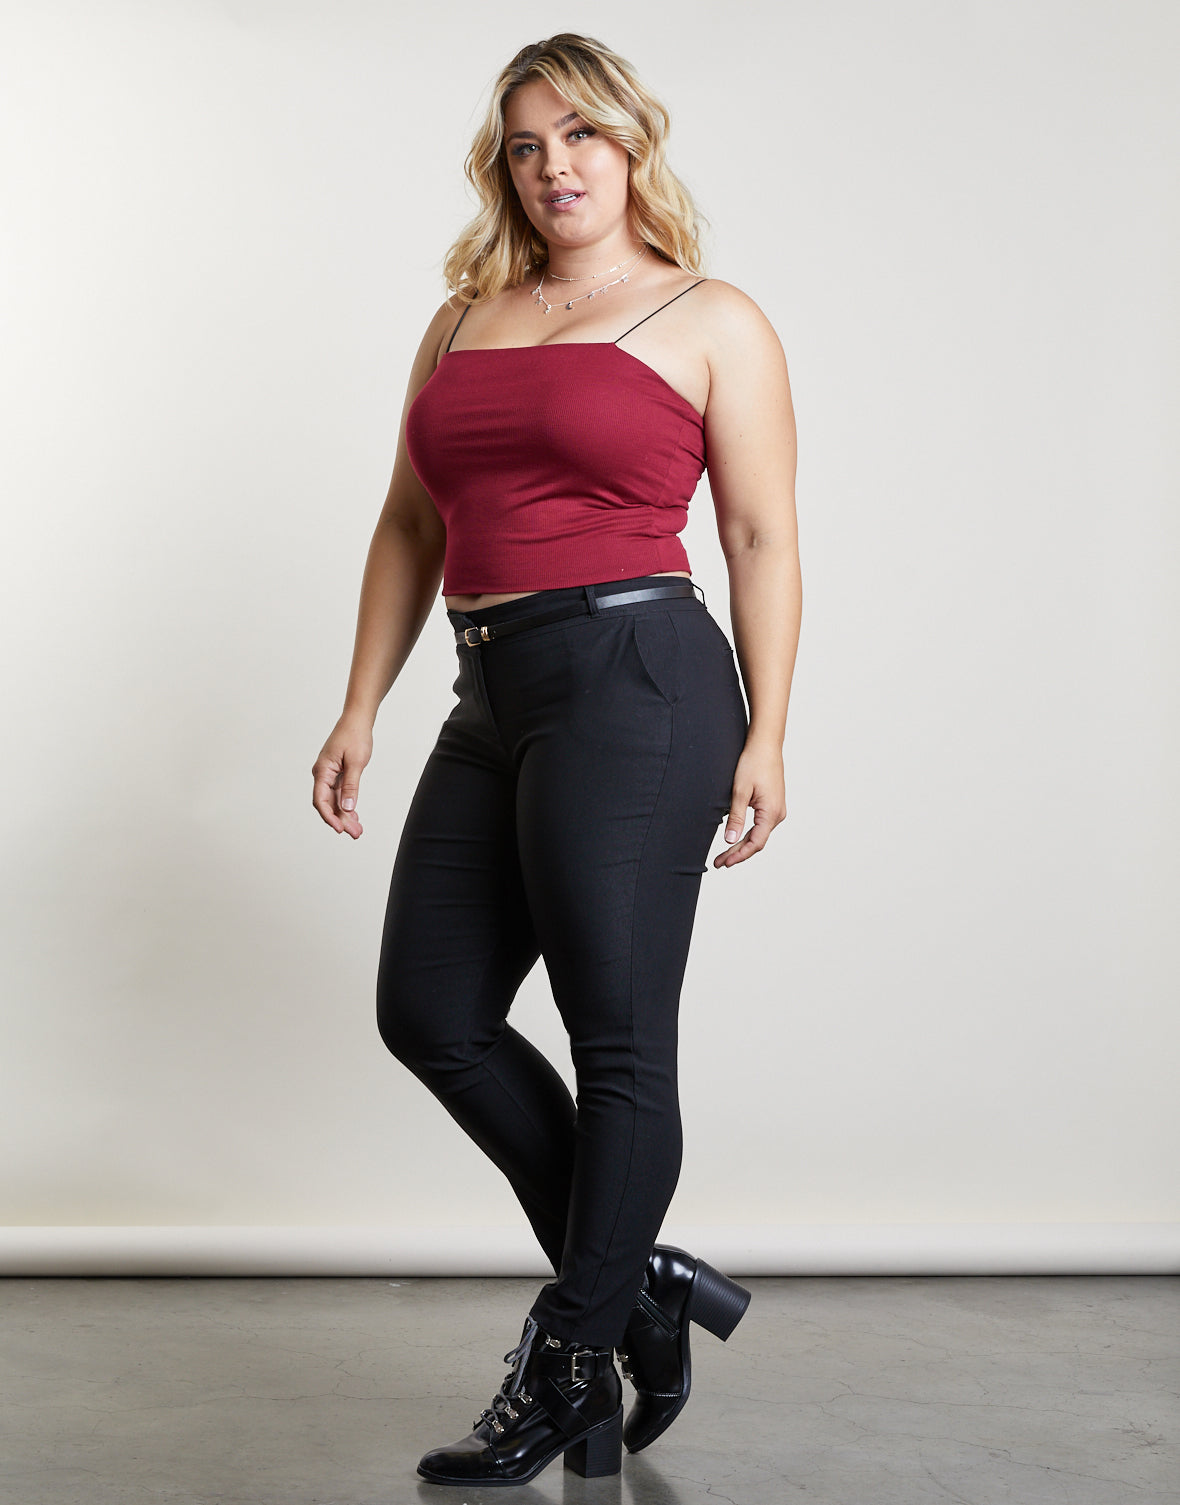 055b6842a18 Plus Size Ribbed Atti-tube Top - Plus Size Crop Top Outfit - Club ...